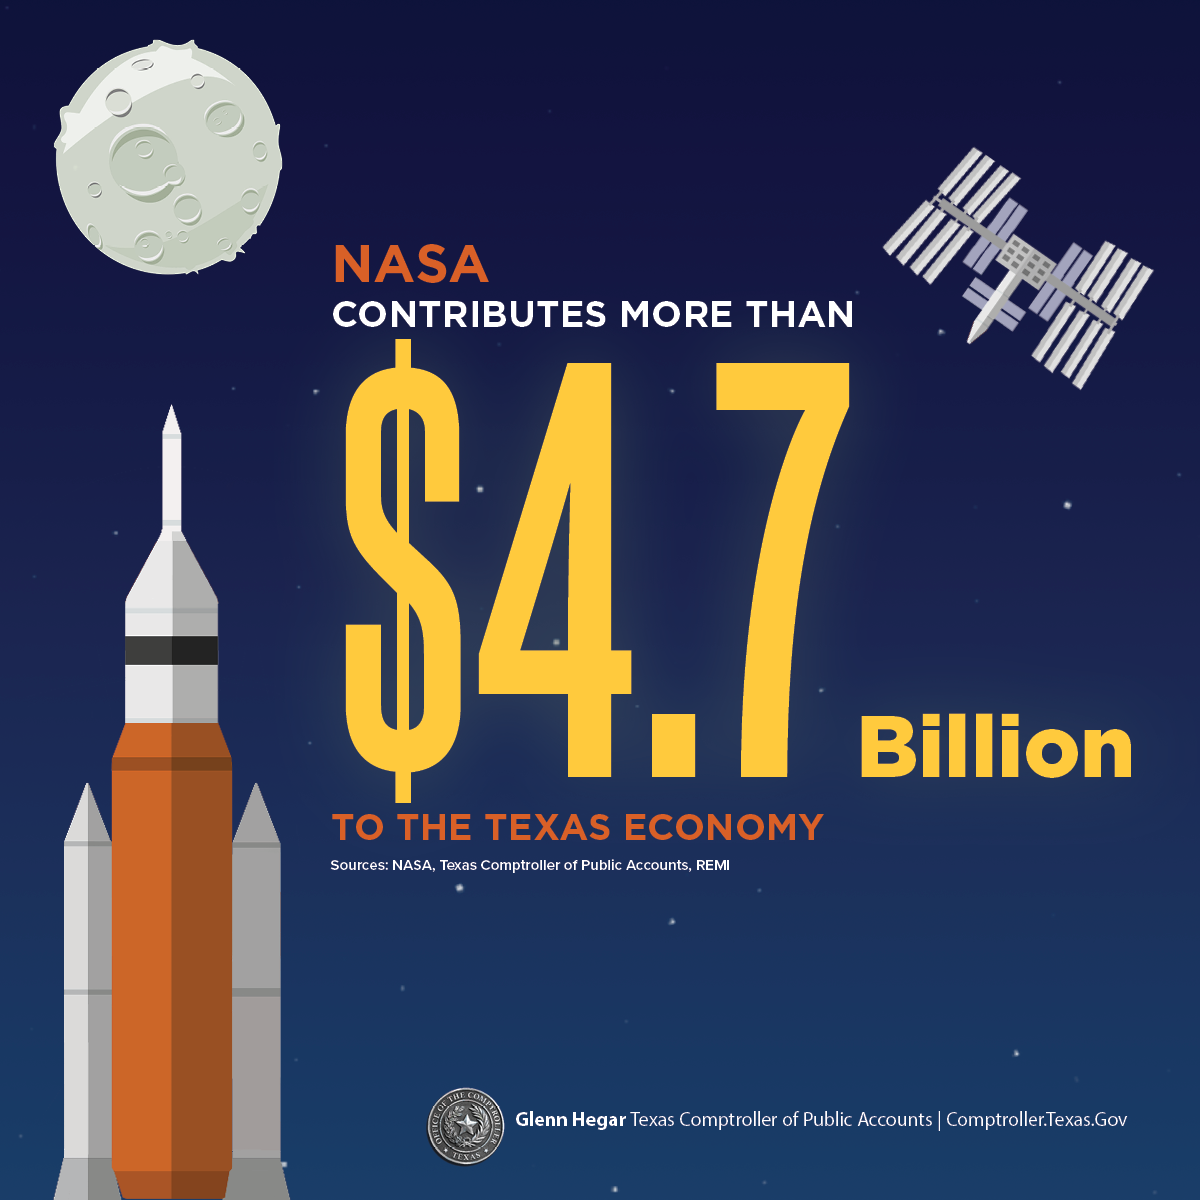 NASA Economic Impact Facebook Infographic